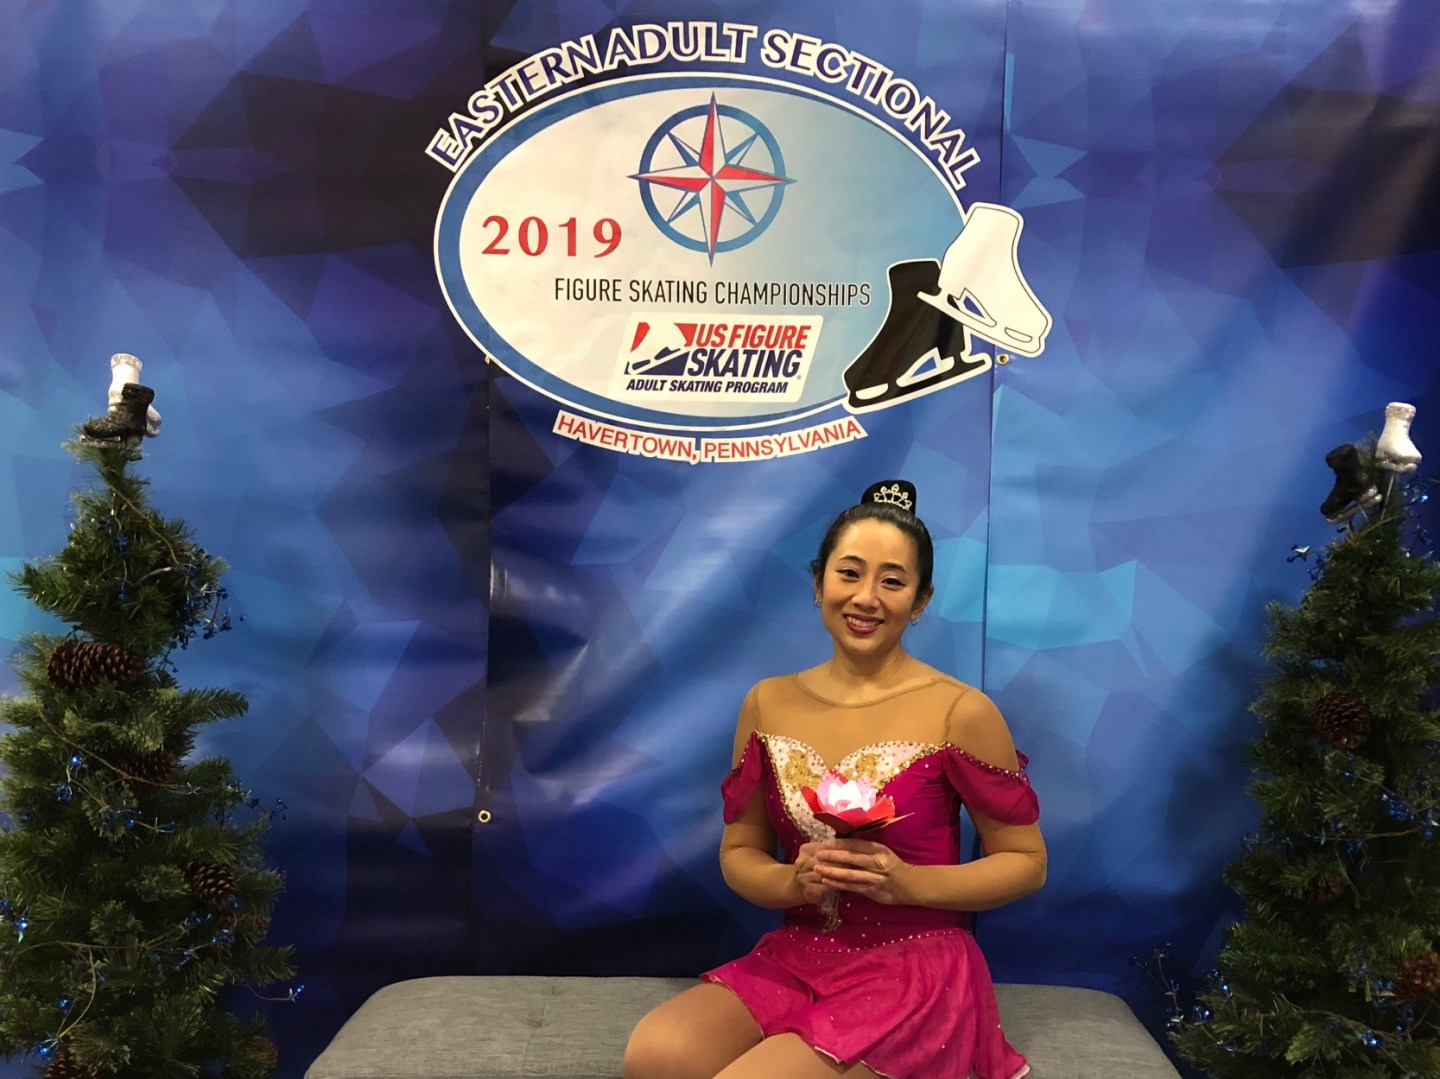 2019 Adult Sectionals